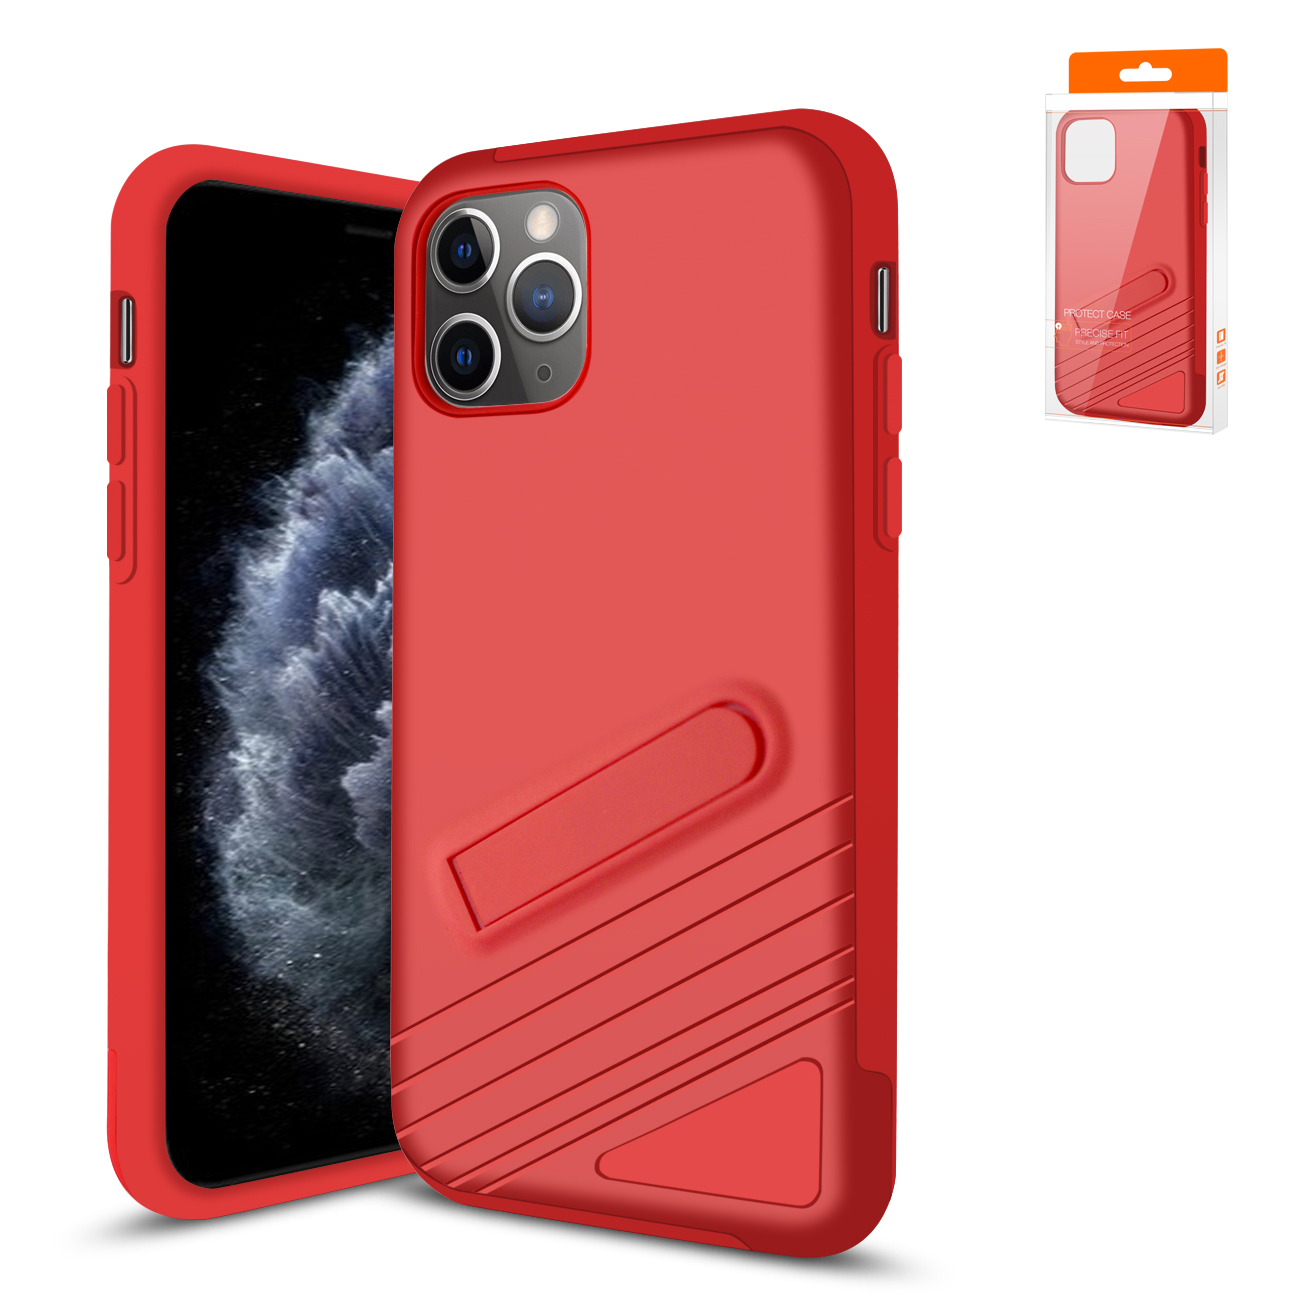 Apple iPhone 11 Pro Max Armor Cases In Red